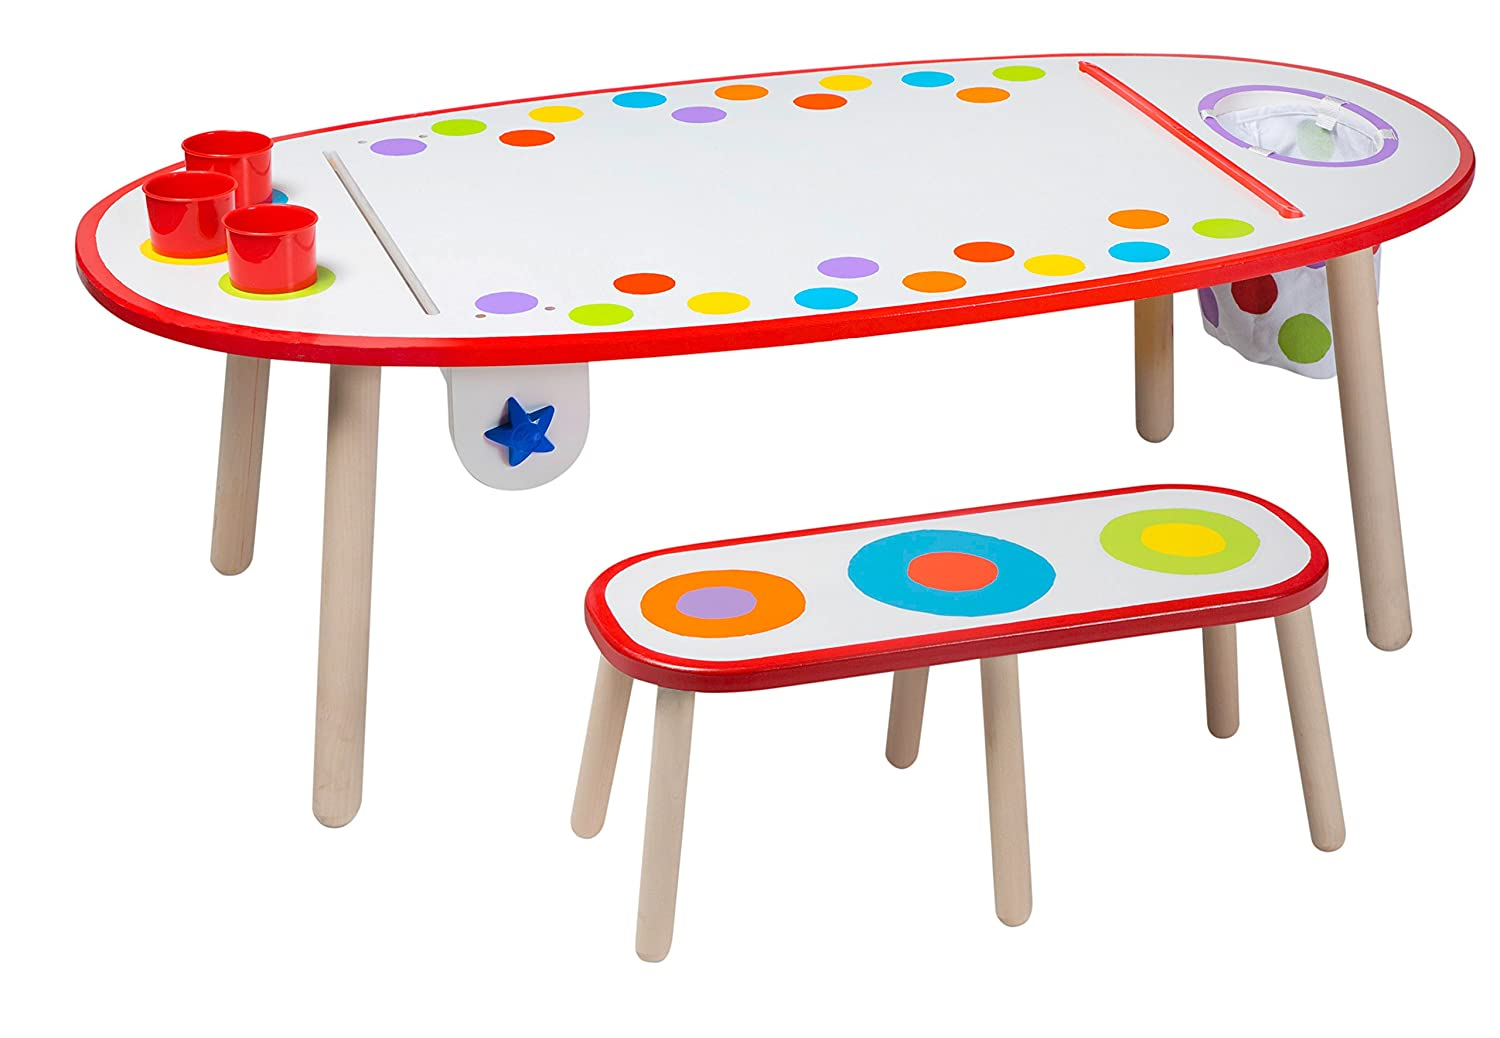 ALEX Toys Artist Studio Super Art Table Rainbow Dots 711WC